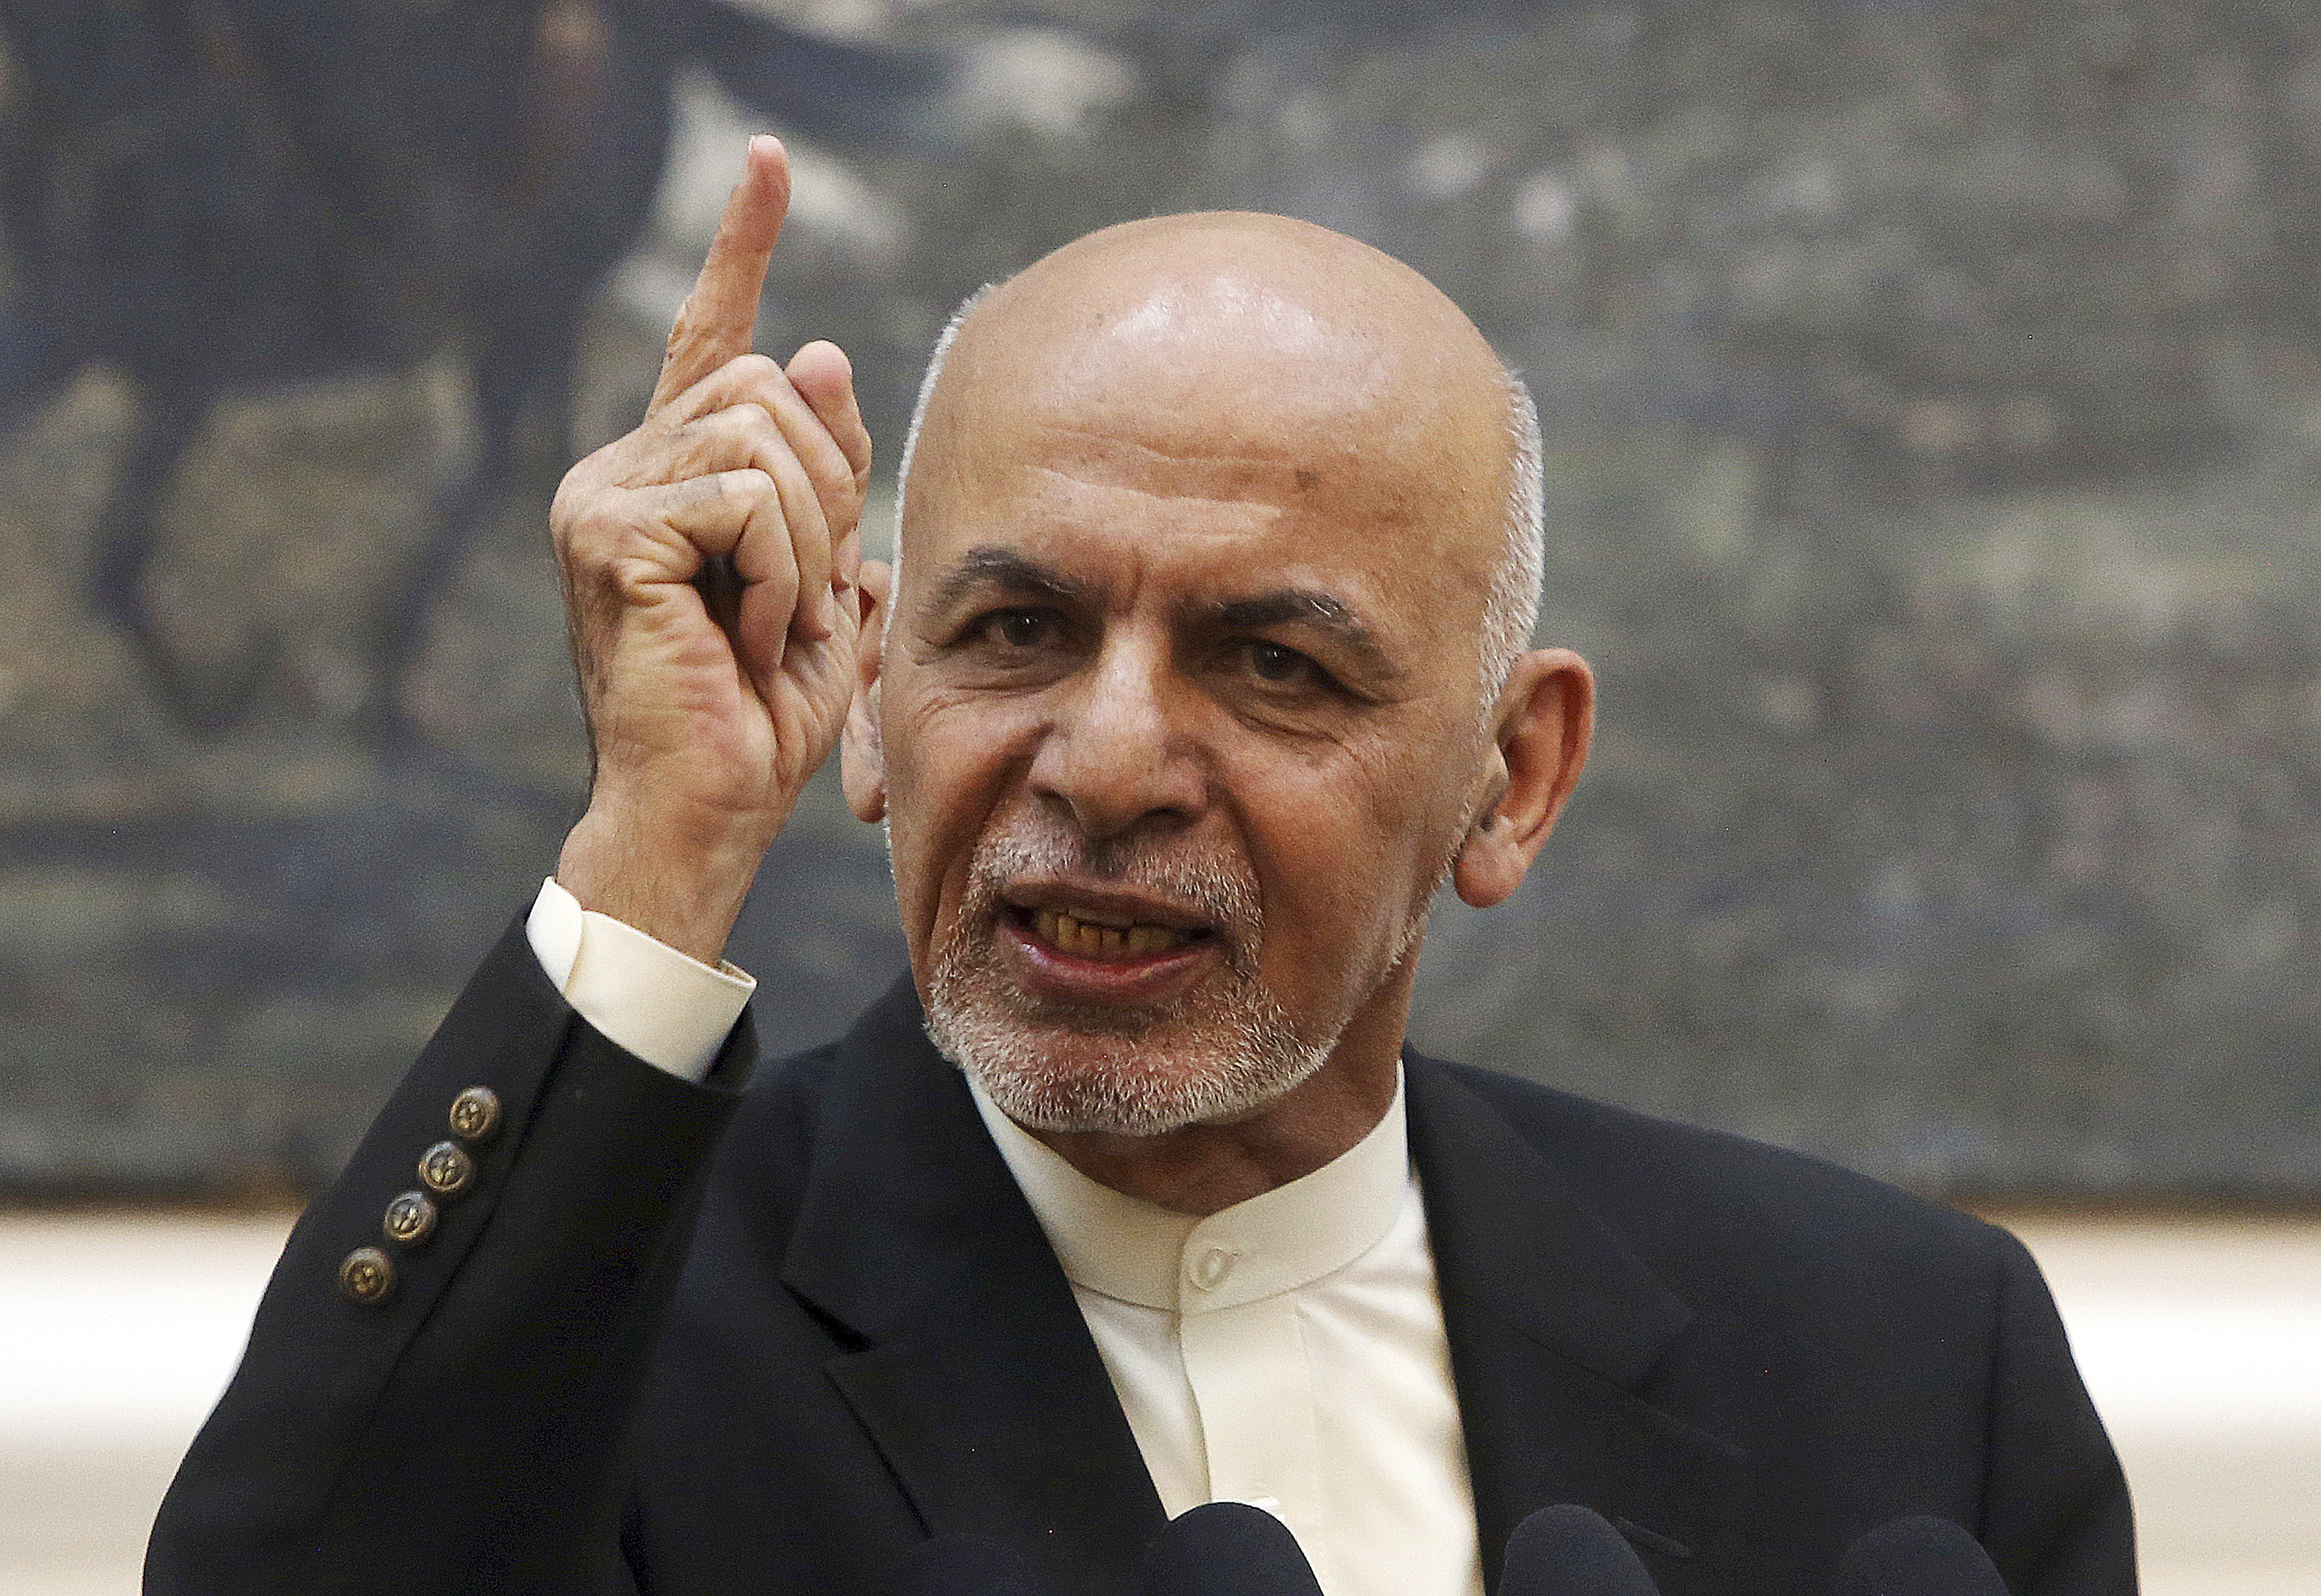 FILE - Afghan President Ashraf Ghani speaks during a press conference at the presidential palace in Kabul, Afghanistan, July 15, 2018.